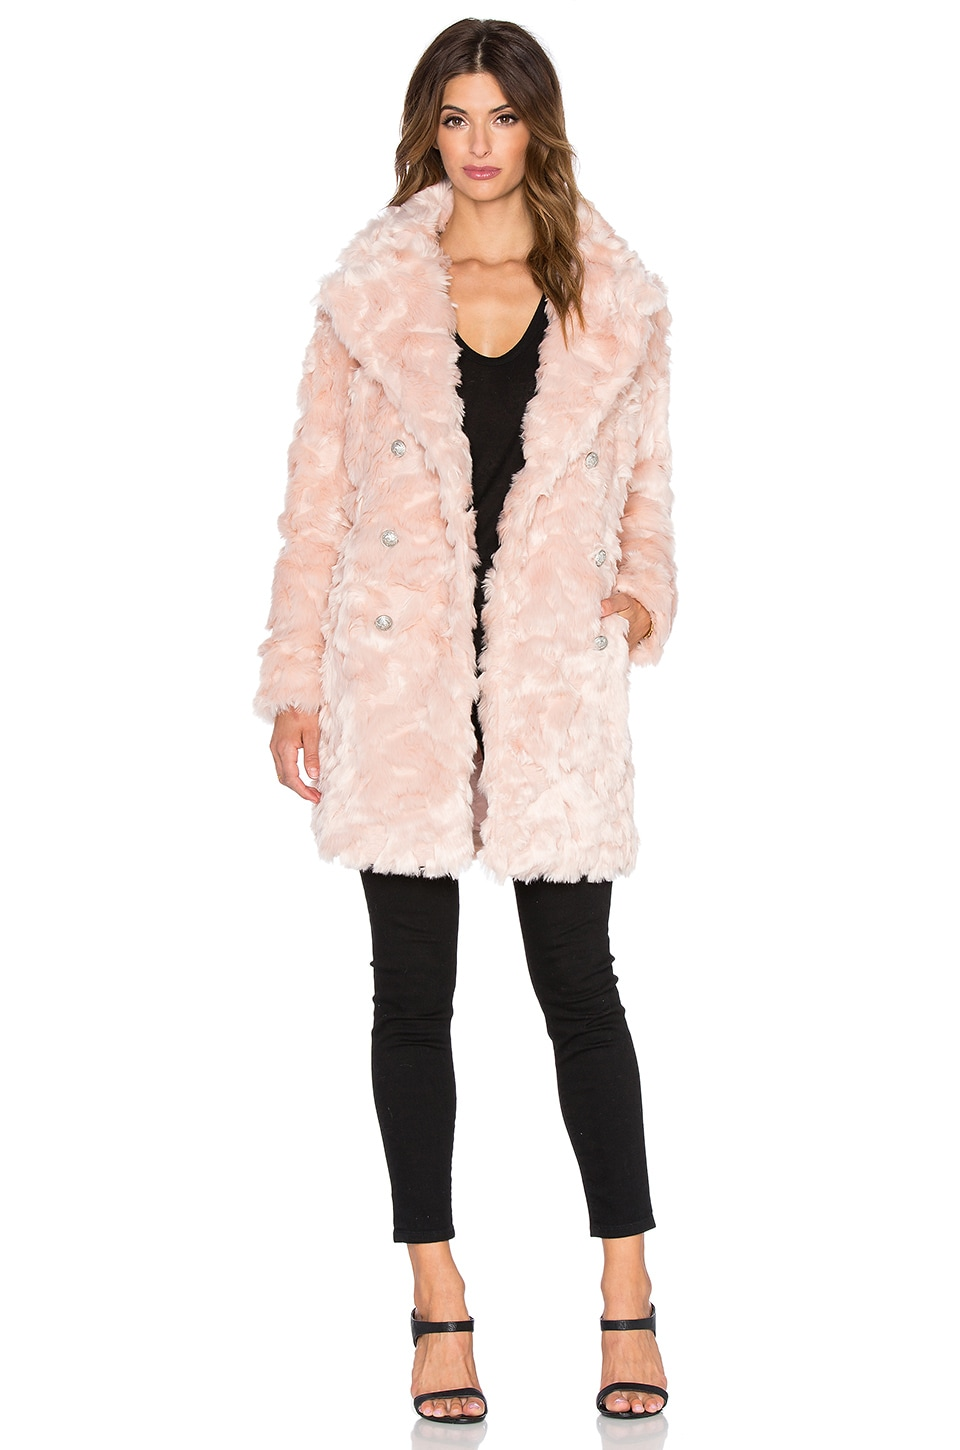 OLCAY GULSEN Offspring Faux Fur Coat in Sweet Delight